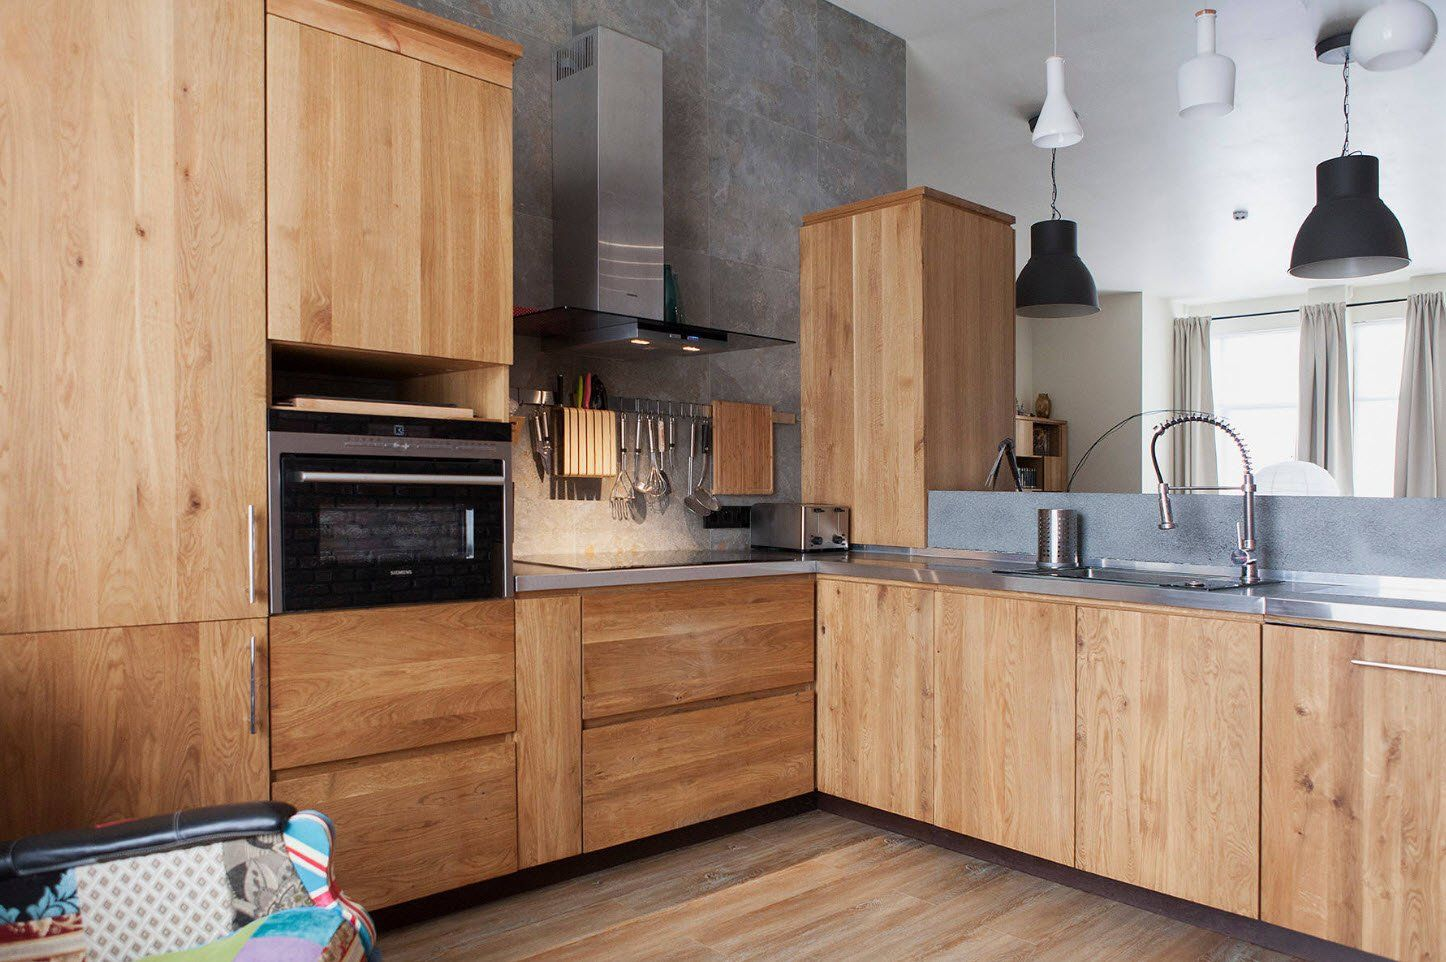 Kitchen Facades: Choosing the Right Beautiful Option for your Style. Light wooden trimming of the modern kitchen with faux concrete wall